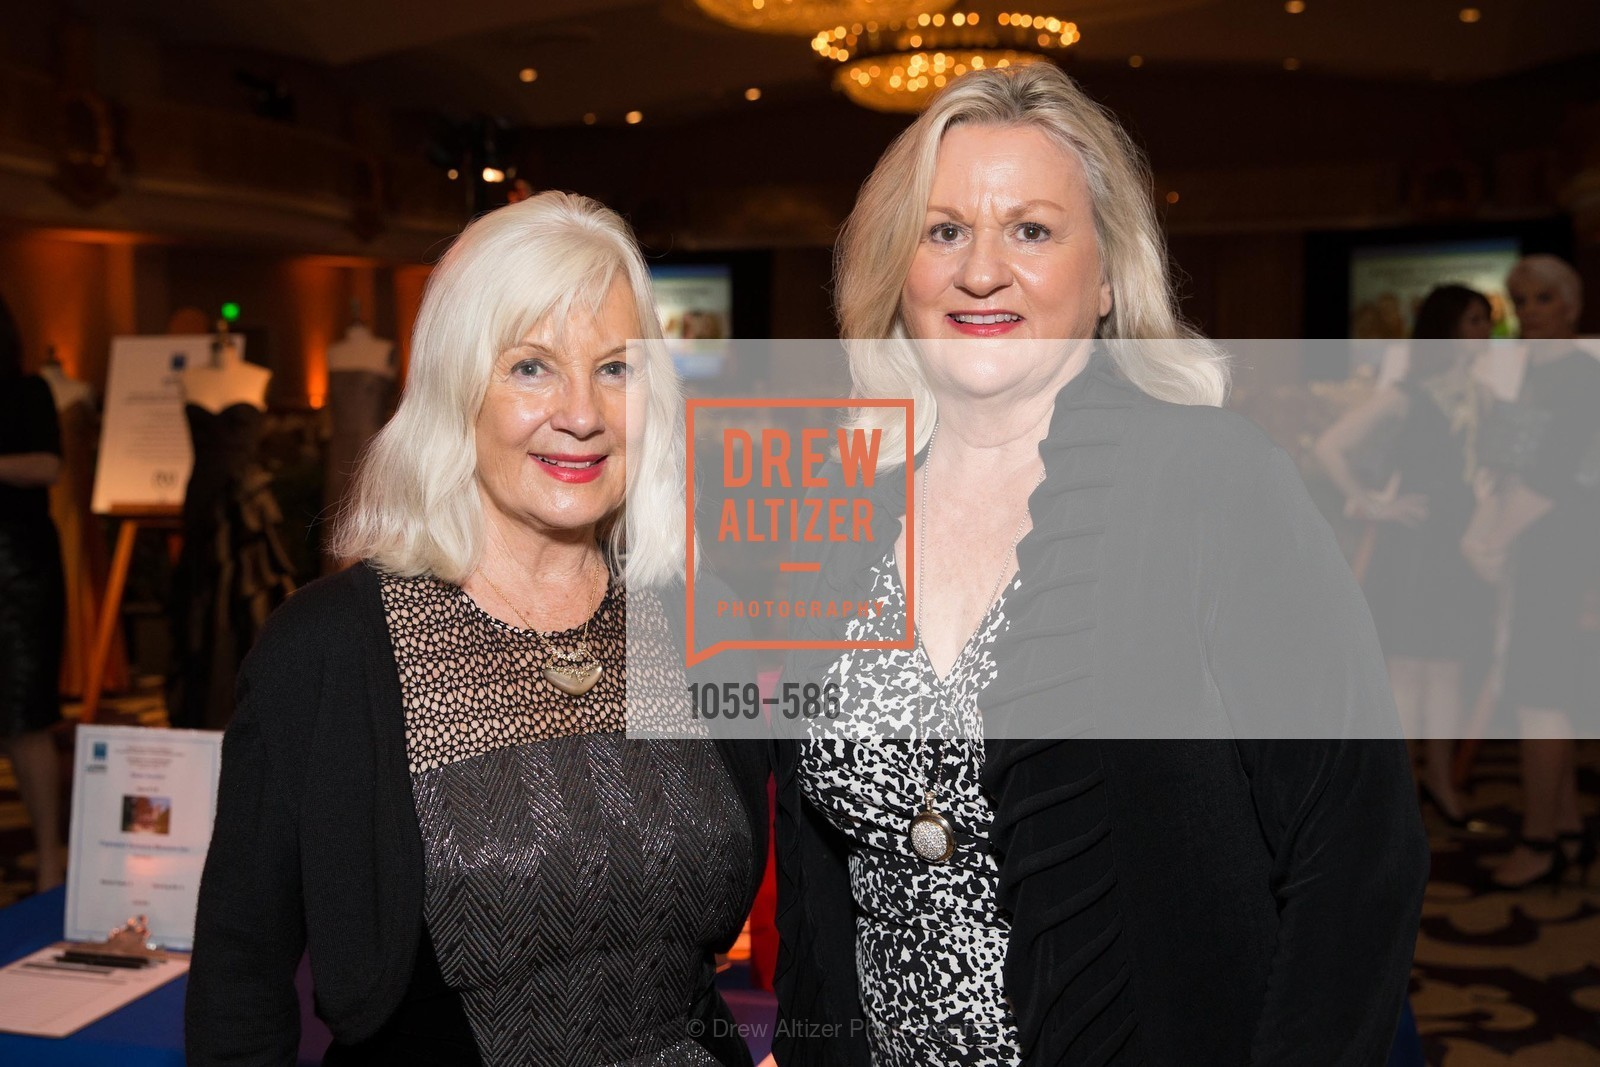 Arlene Inch, Linda Silver, 2014 Bay Area ARTHRITIS AUXILLIARY Benefit & Fashion Show, US, October 2nd, 2014,Drew Altizer, Drew Altizer Photography, full-service agency, private events, San Francisco photographer, photographer california